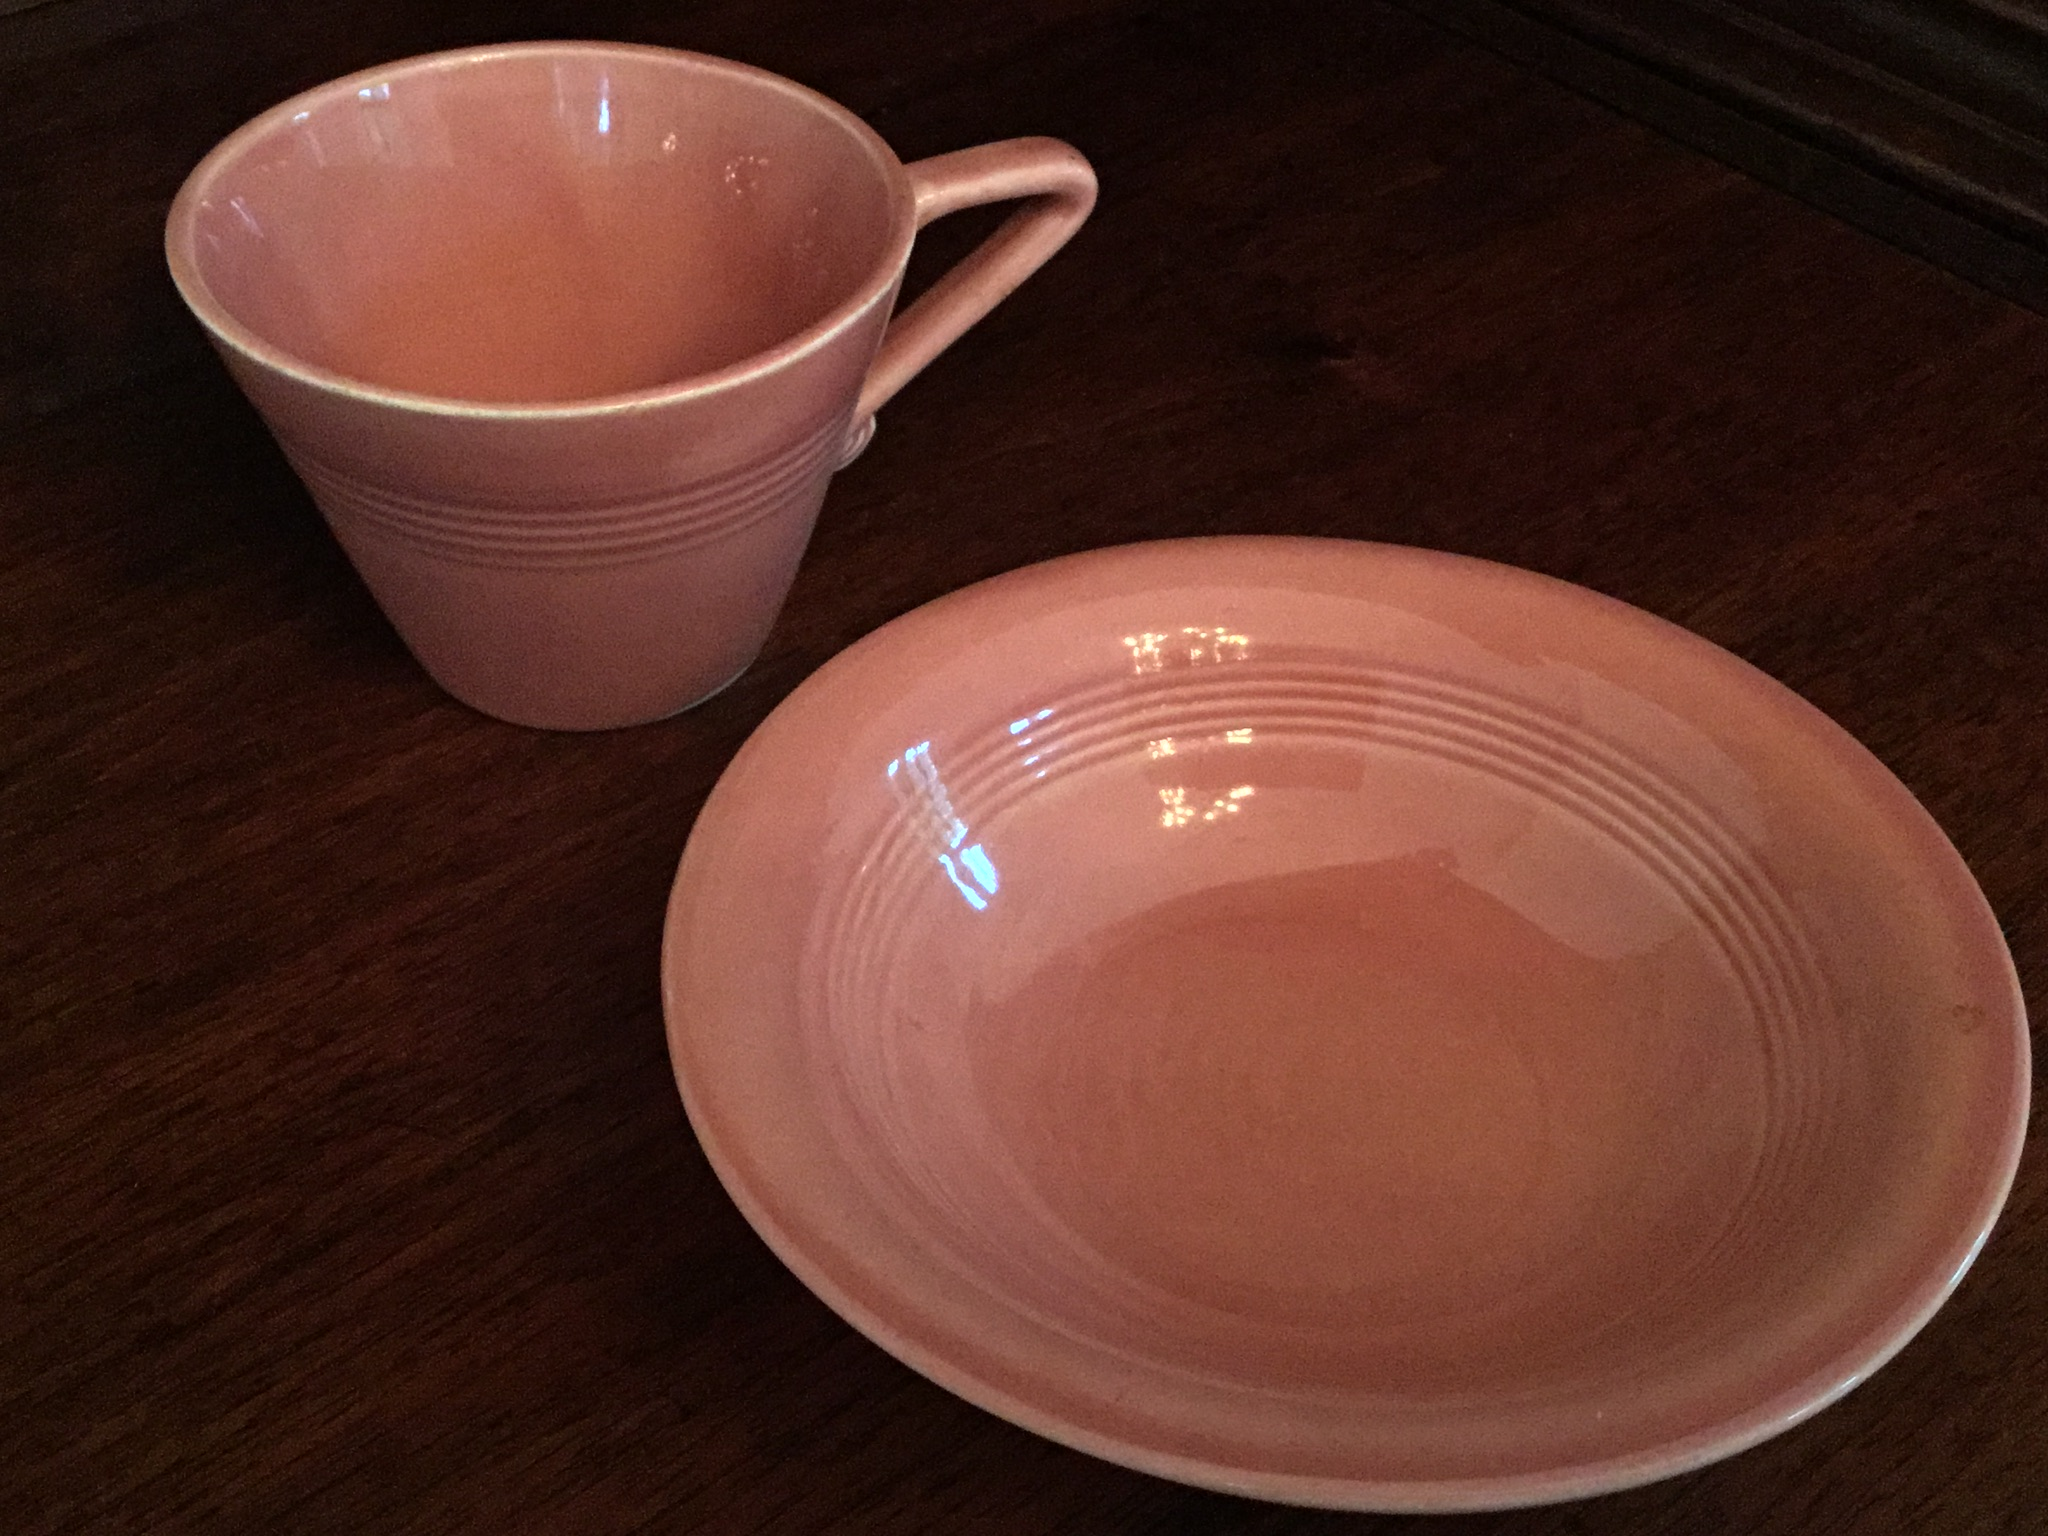 Vintage Fiestaware Dusty Pink Coffee Cup and Bowl